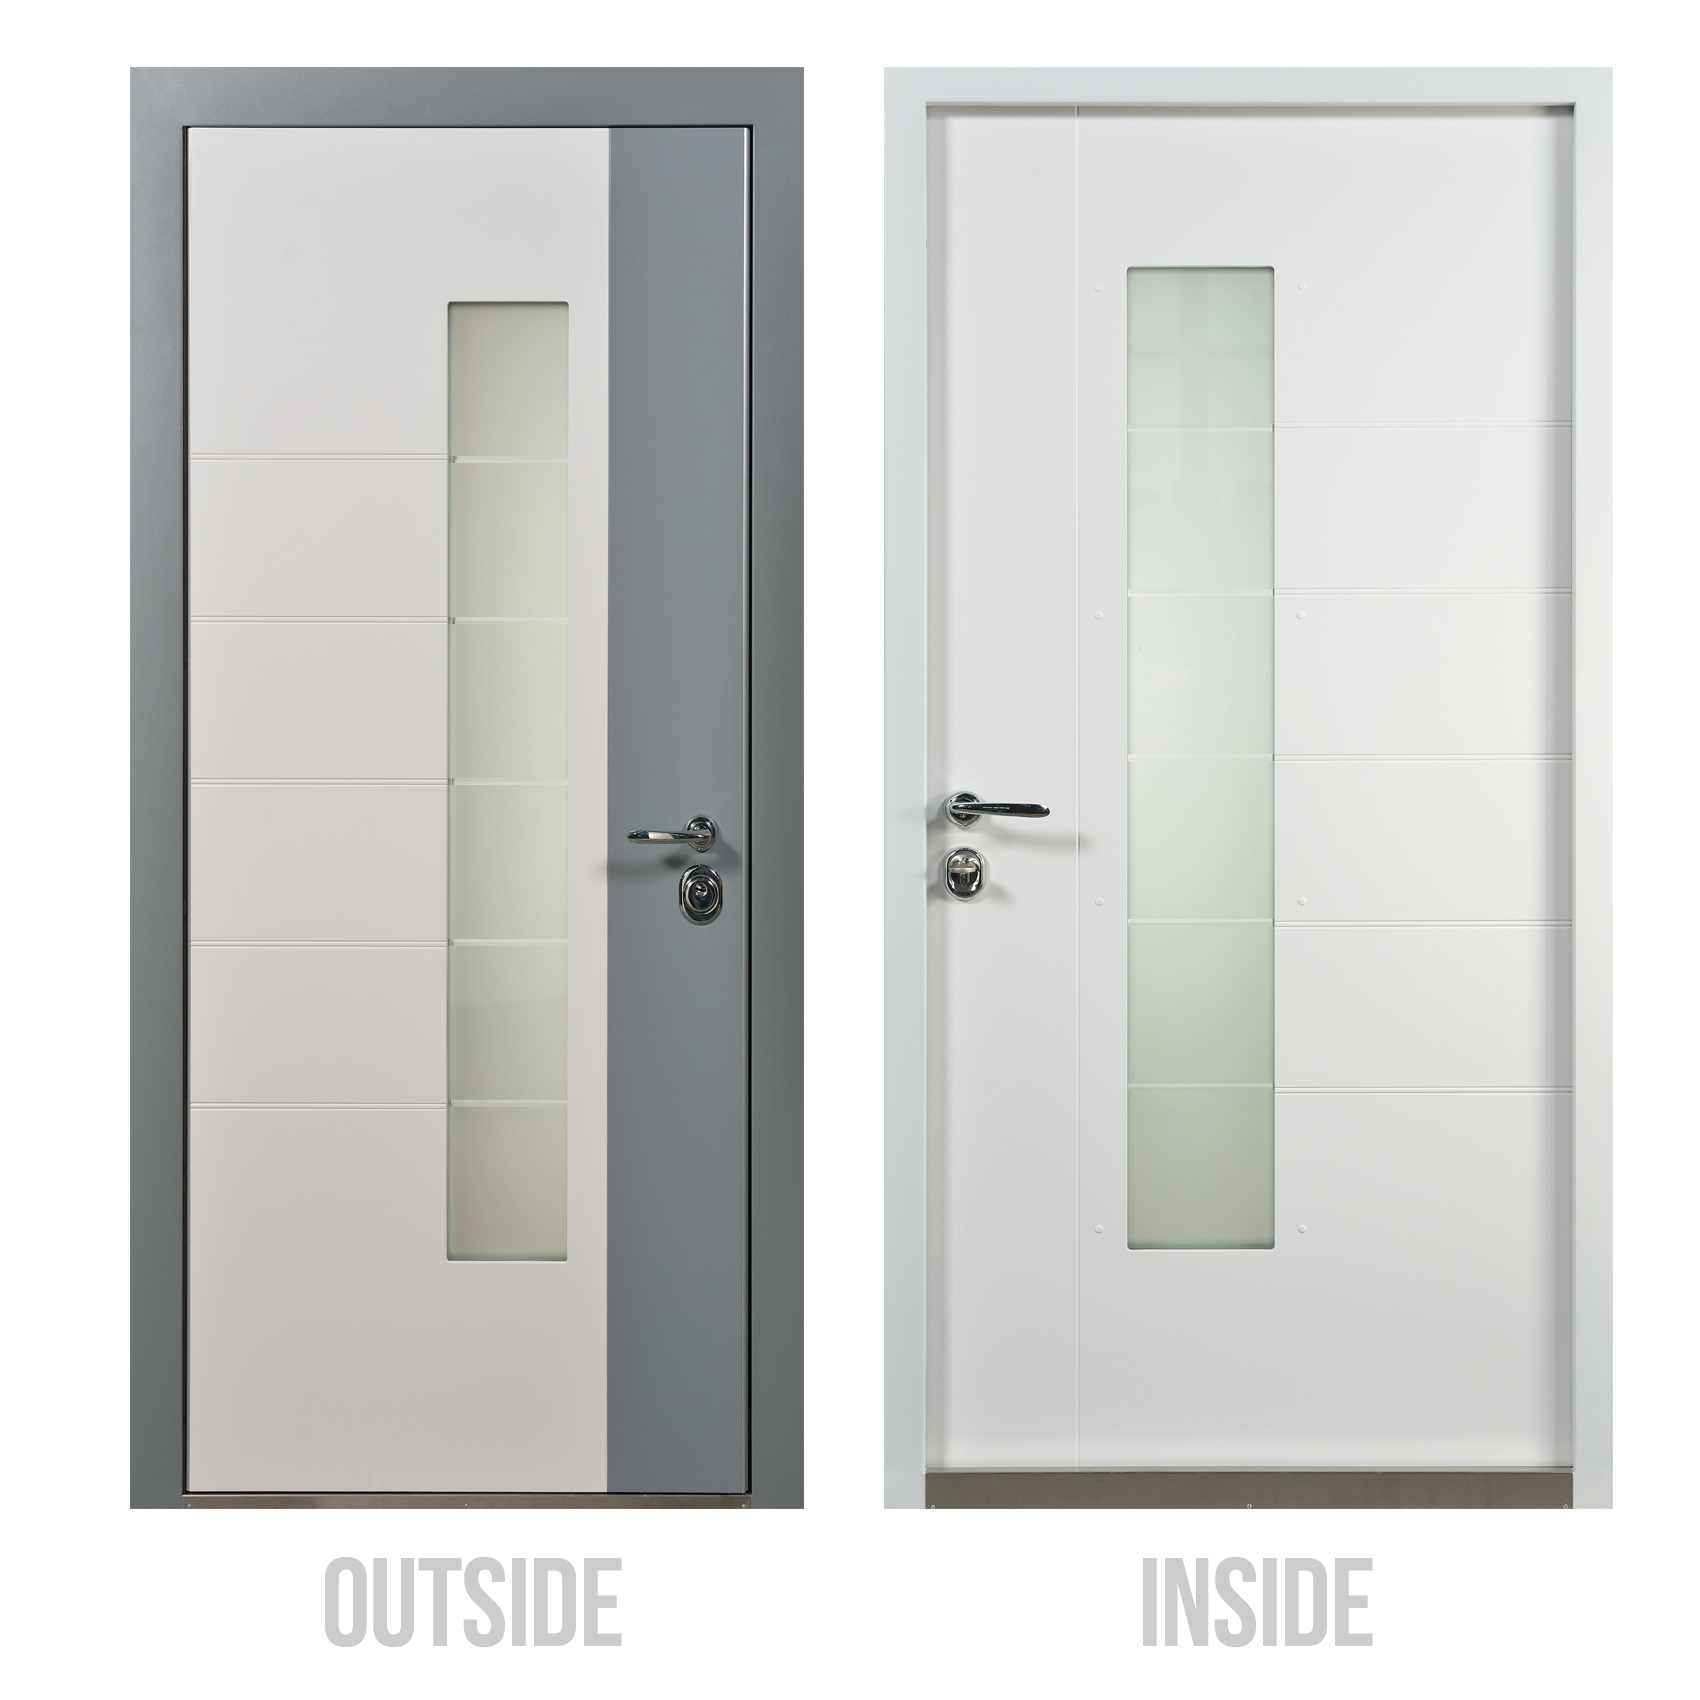 buy frot front door at a bargain price from novo porte at